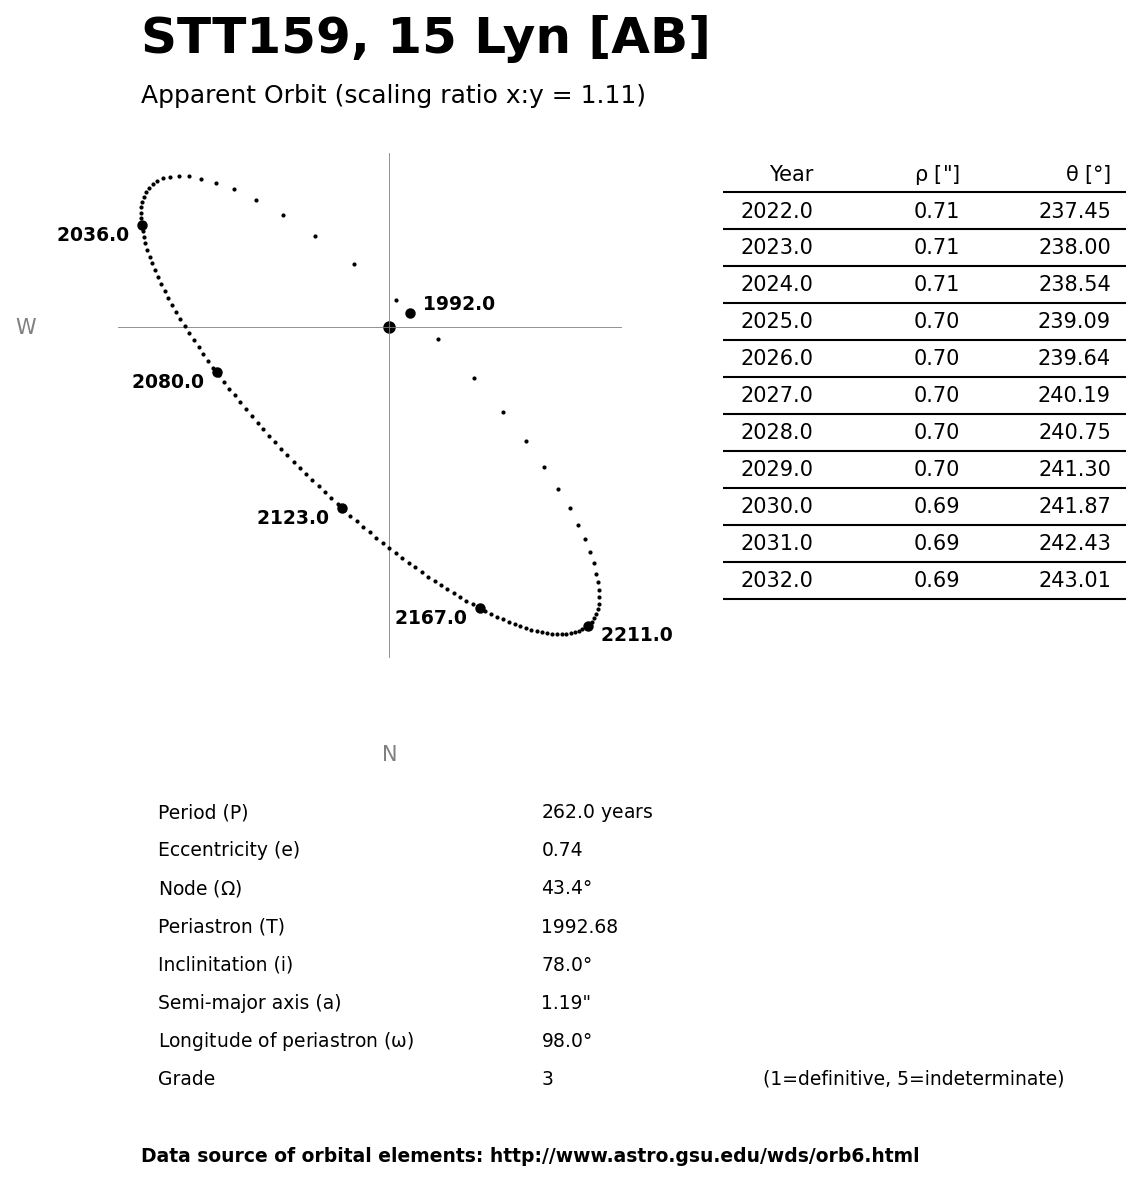 ../images/binary-star-orbits/STT159-AB-orbit.jpg